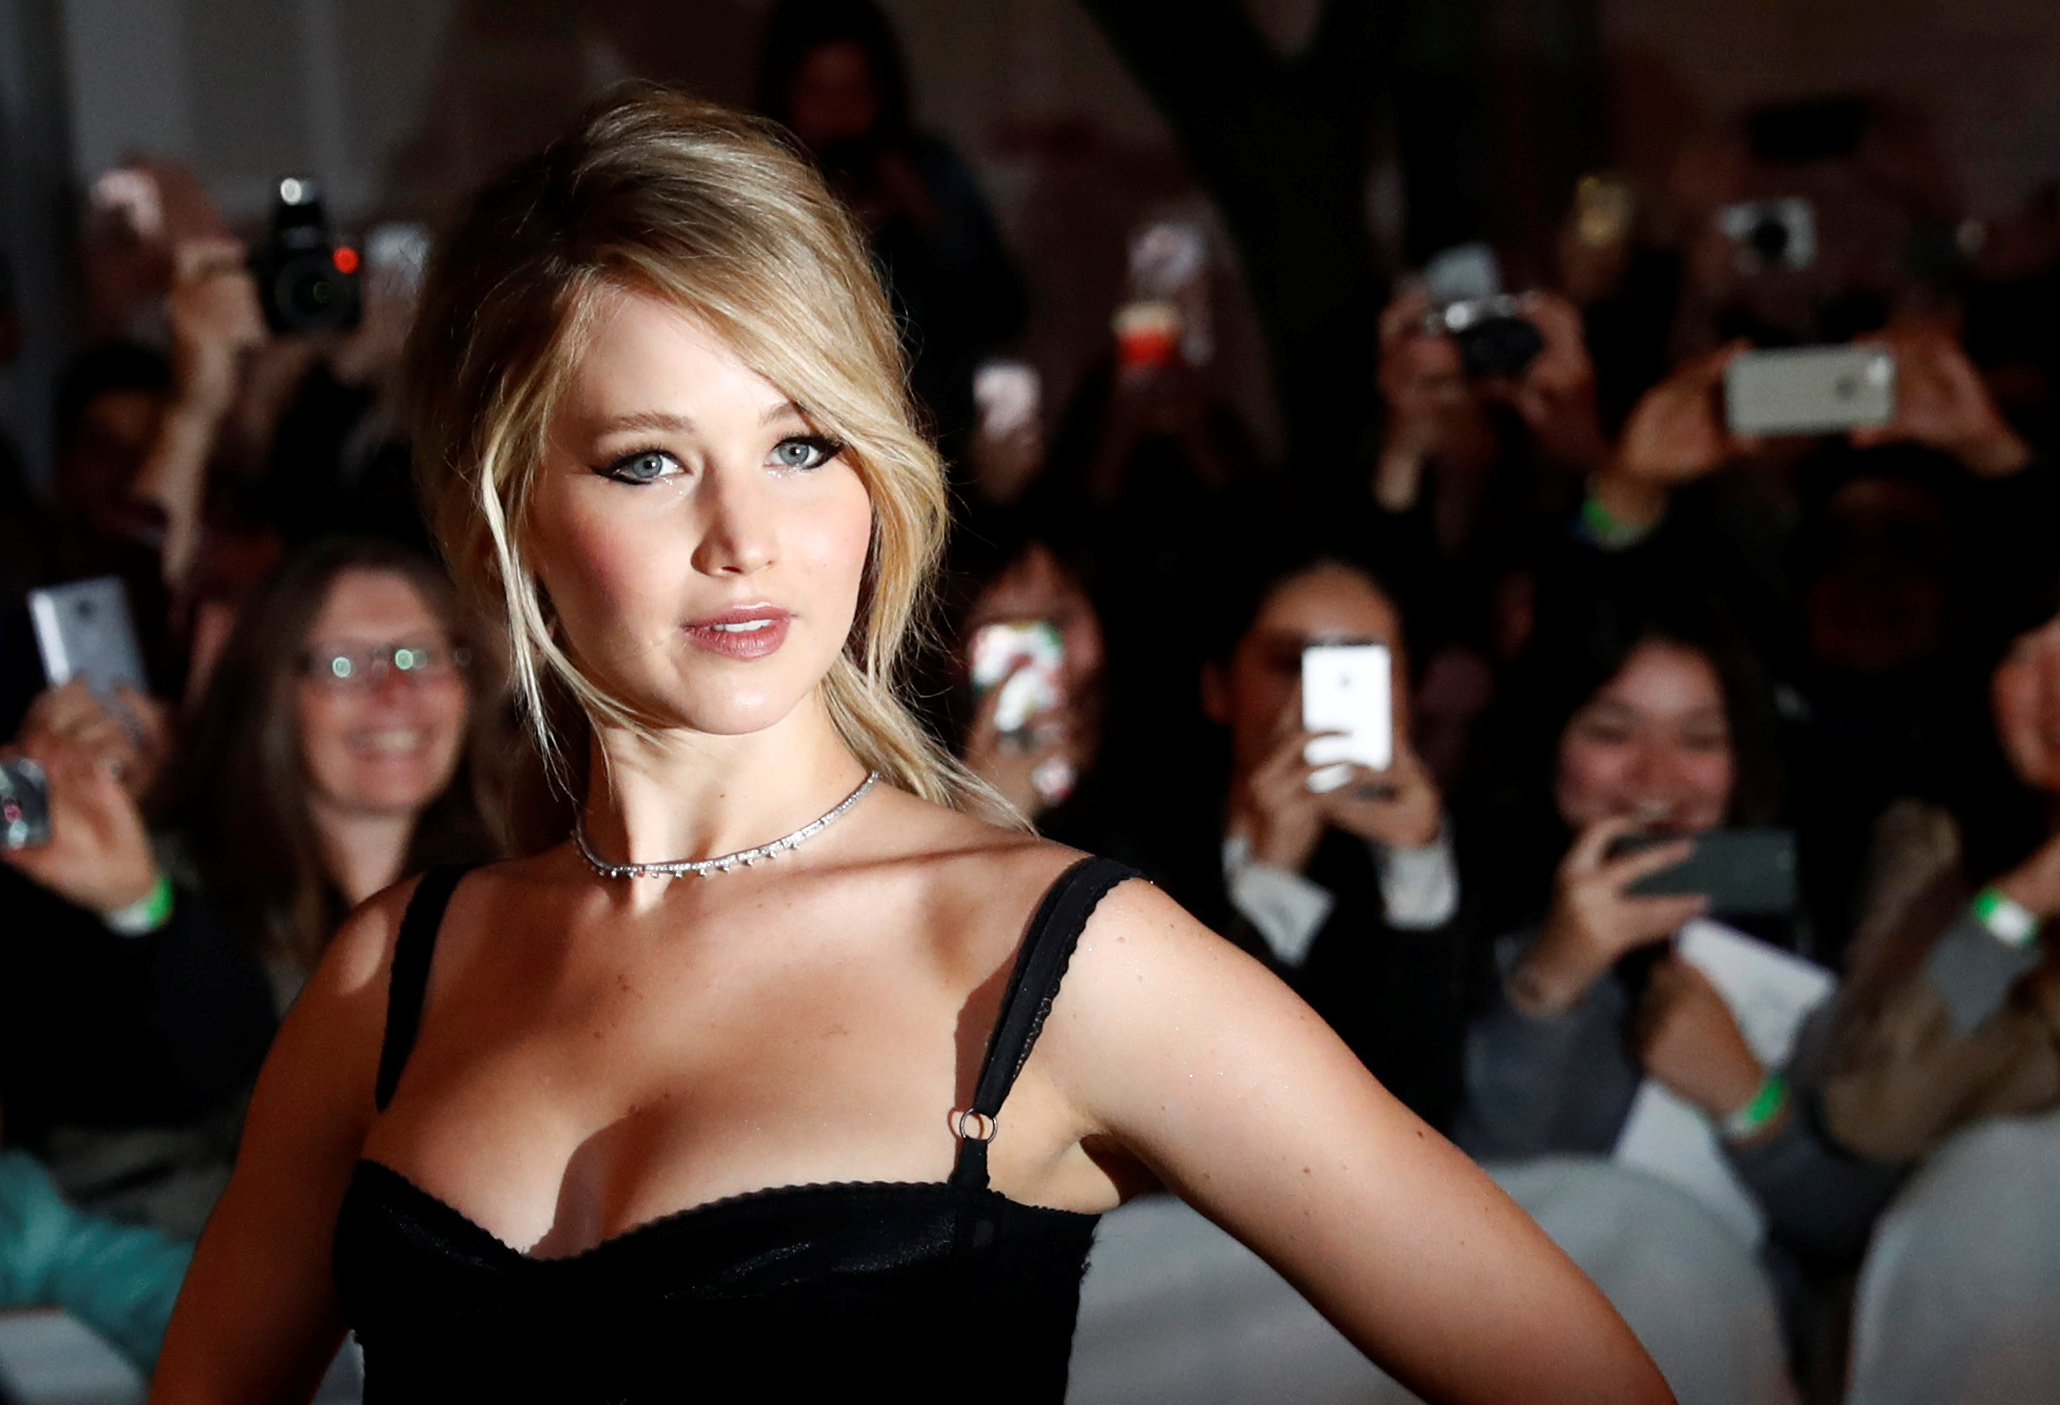 Jennifer Lawrence says her nudity on 'Red Sparrow' set made people uncomfortable